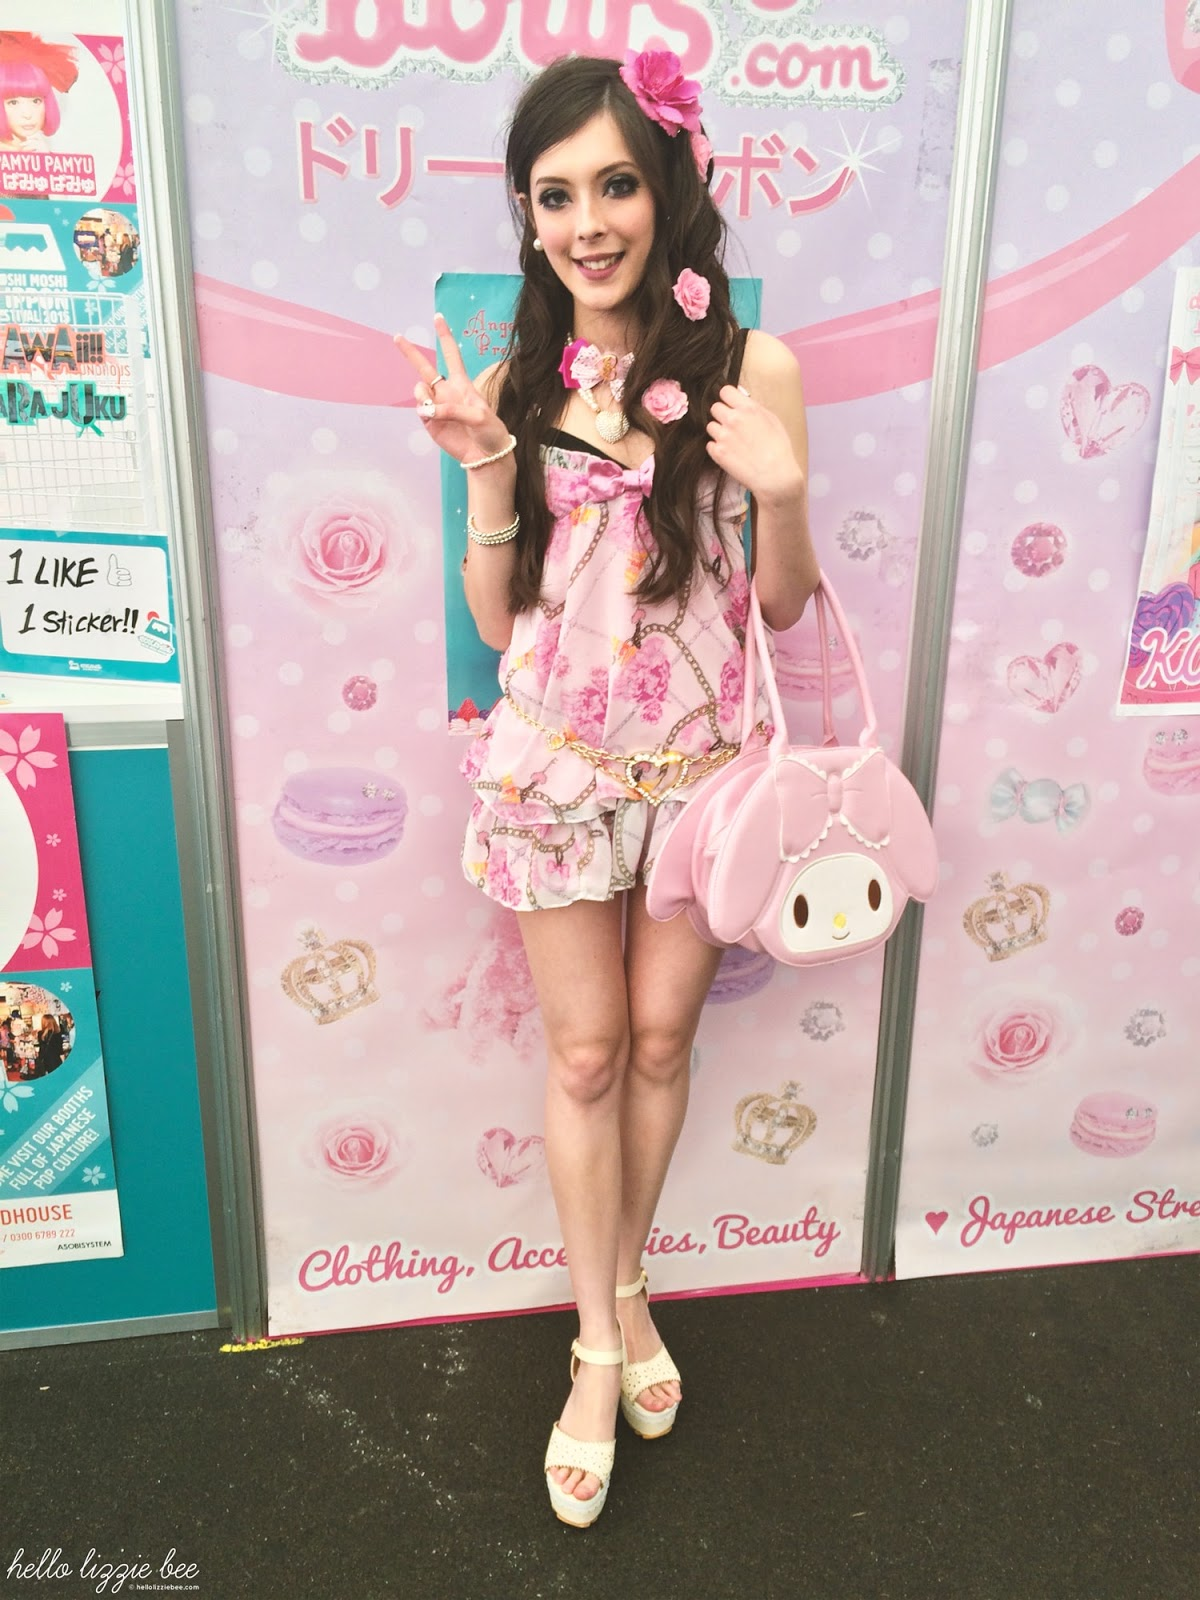 agejo gyaru, ma*rs gyaru, kawaii fashion, shibuya fashion, gaijin gyaru, lizzie bee